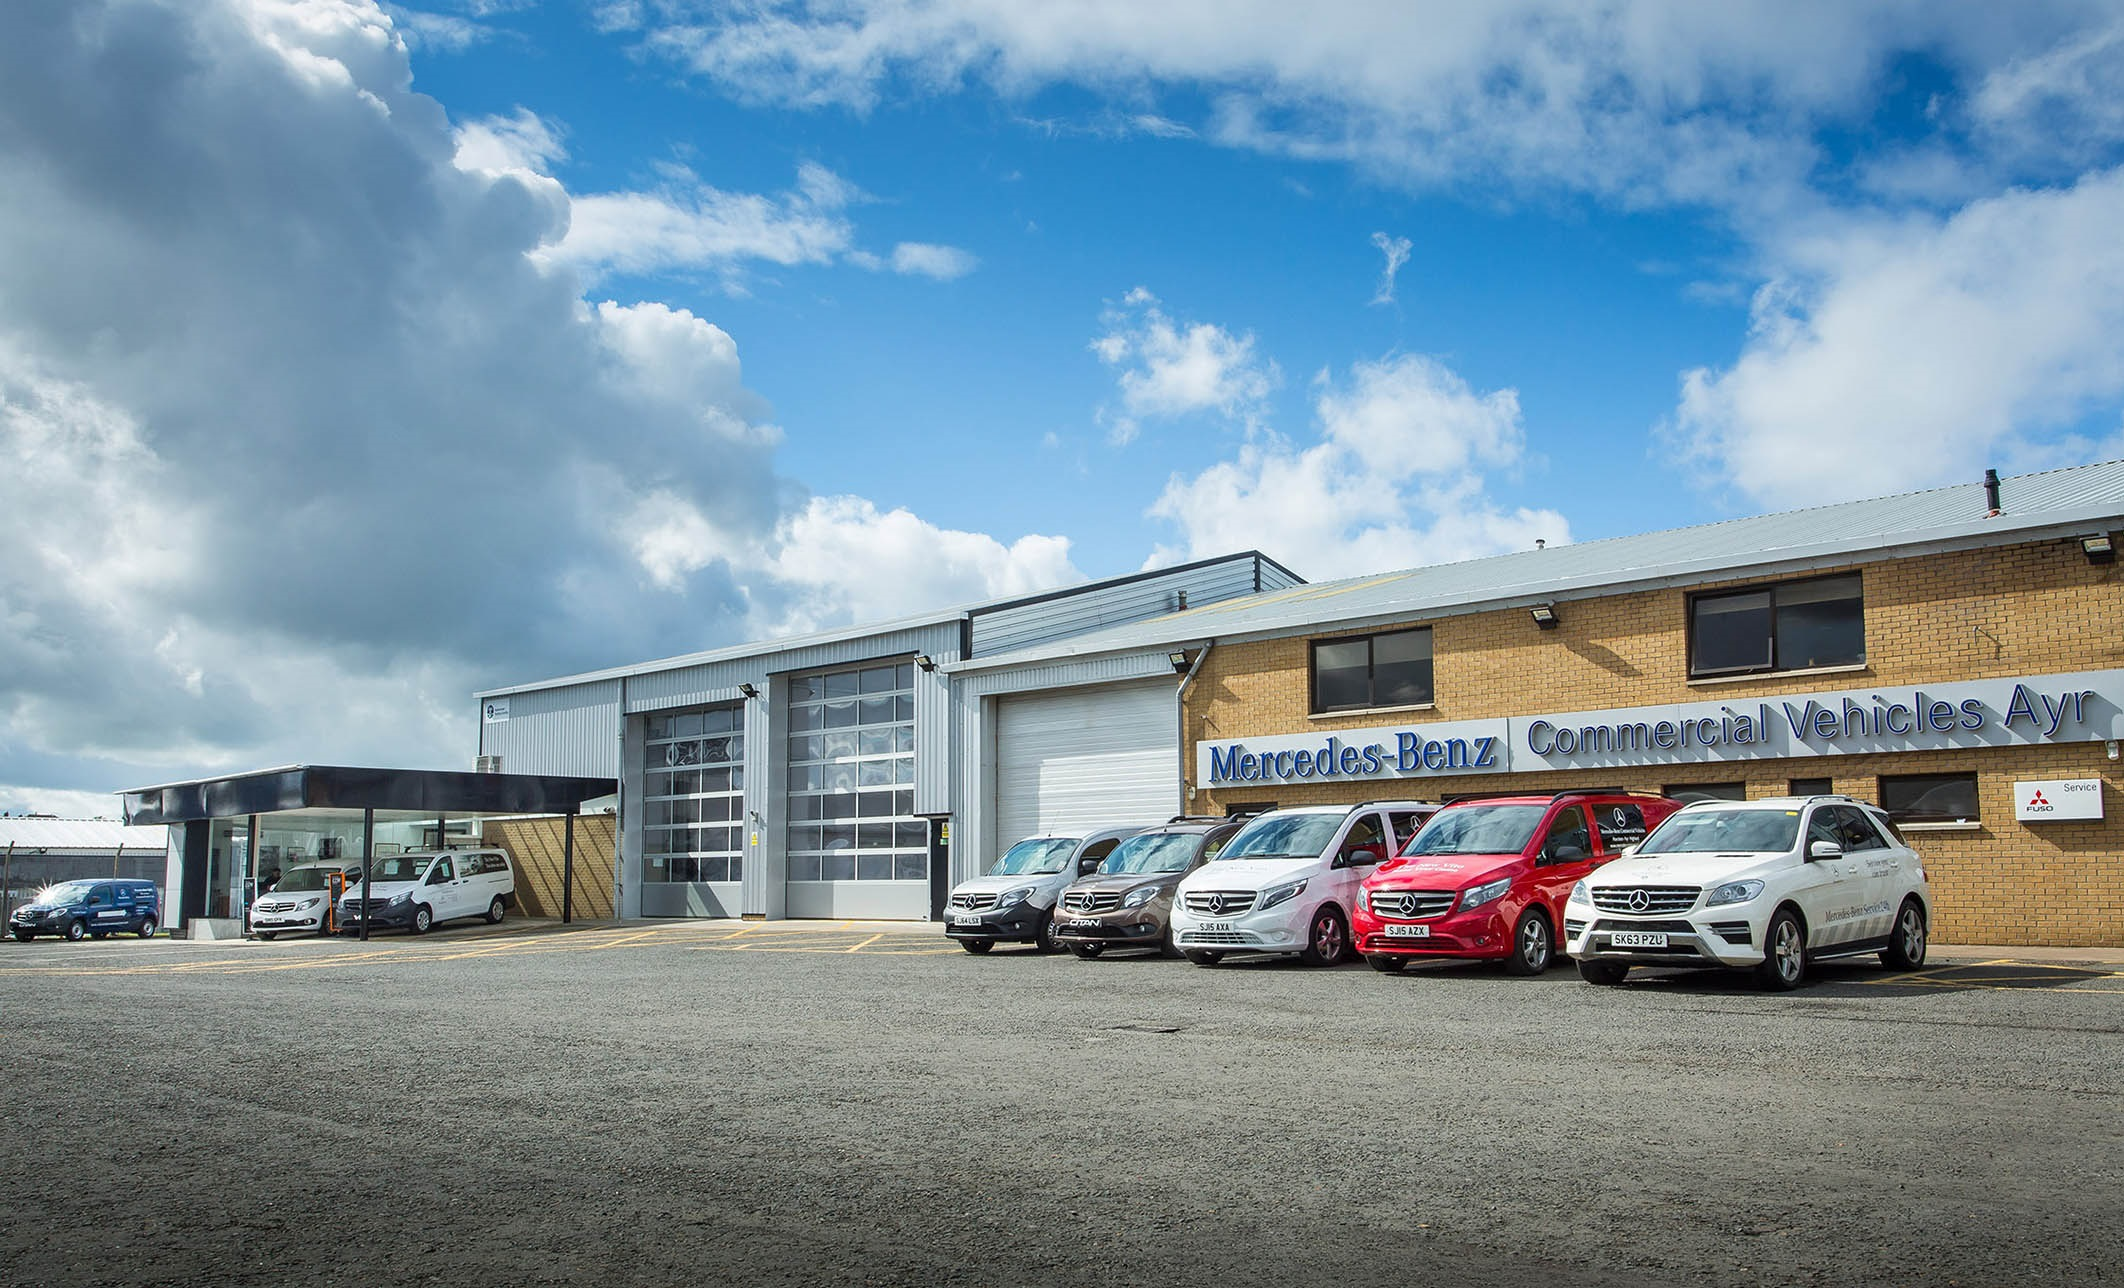 Premium service puts caledonian truck van dealerships in for Mercedes benz commercial